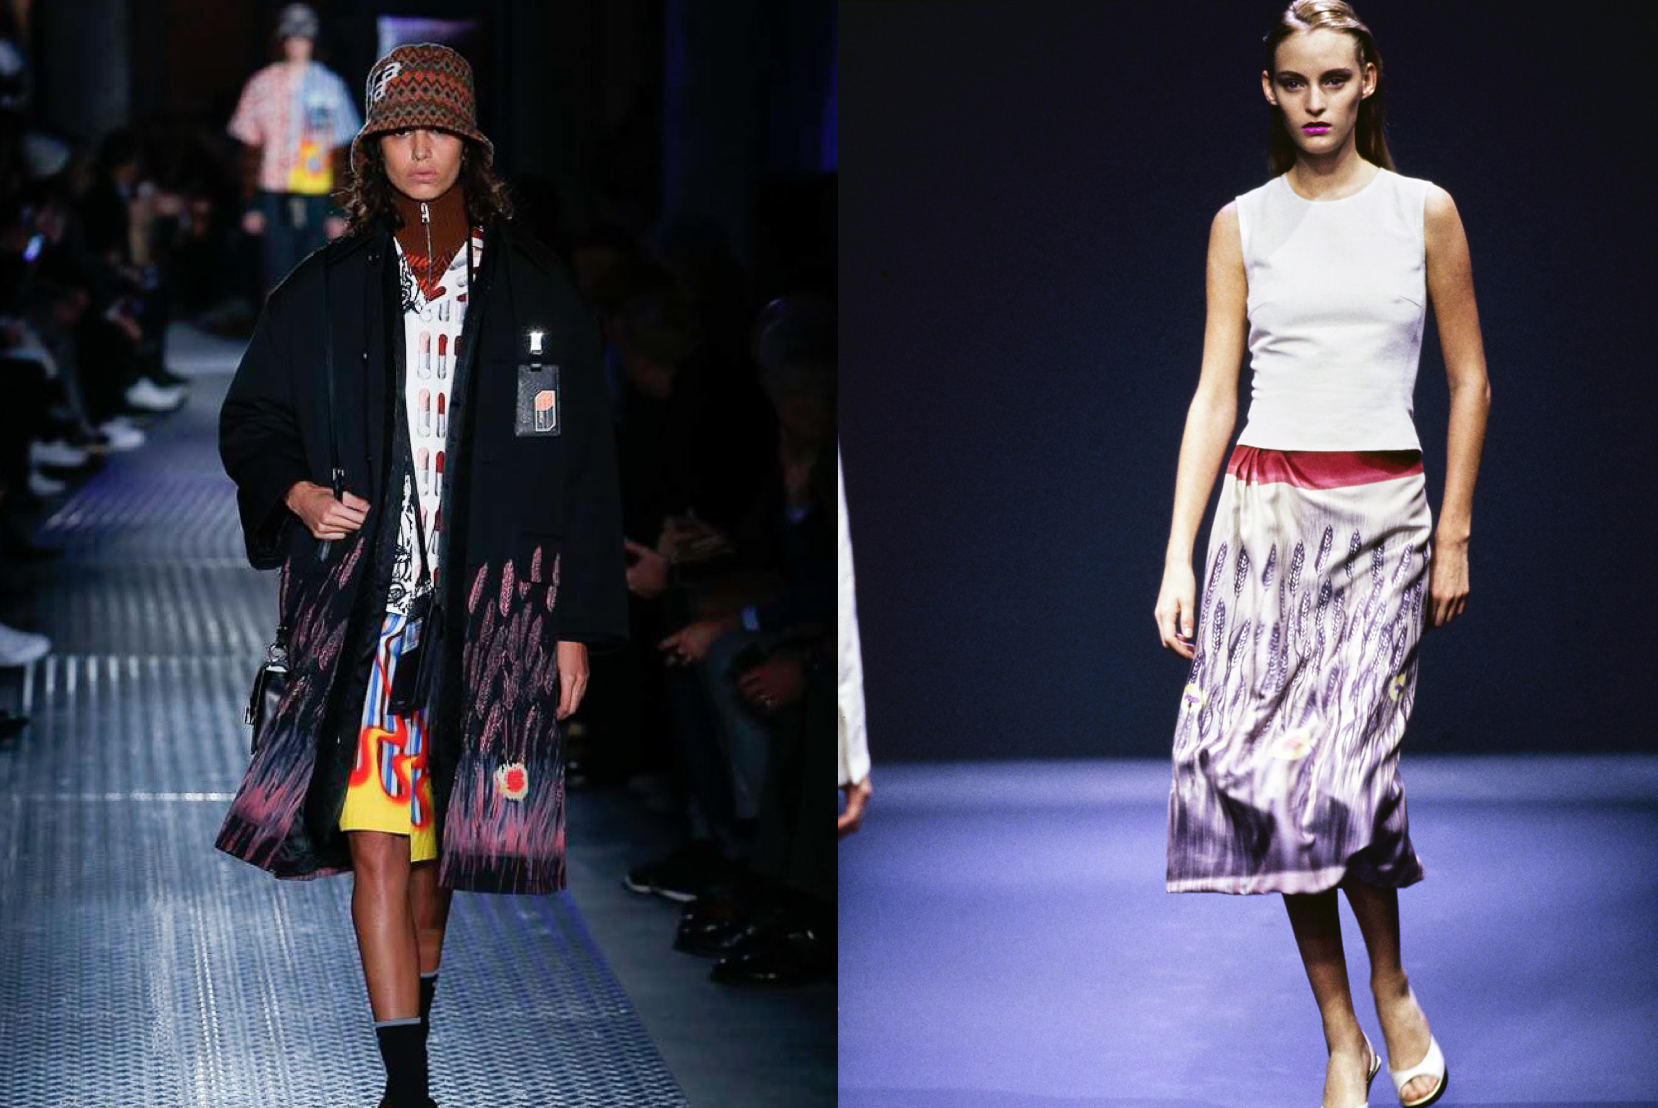 Prada F/W 2018 feathers (left) & Prada S/S 1998 (right)